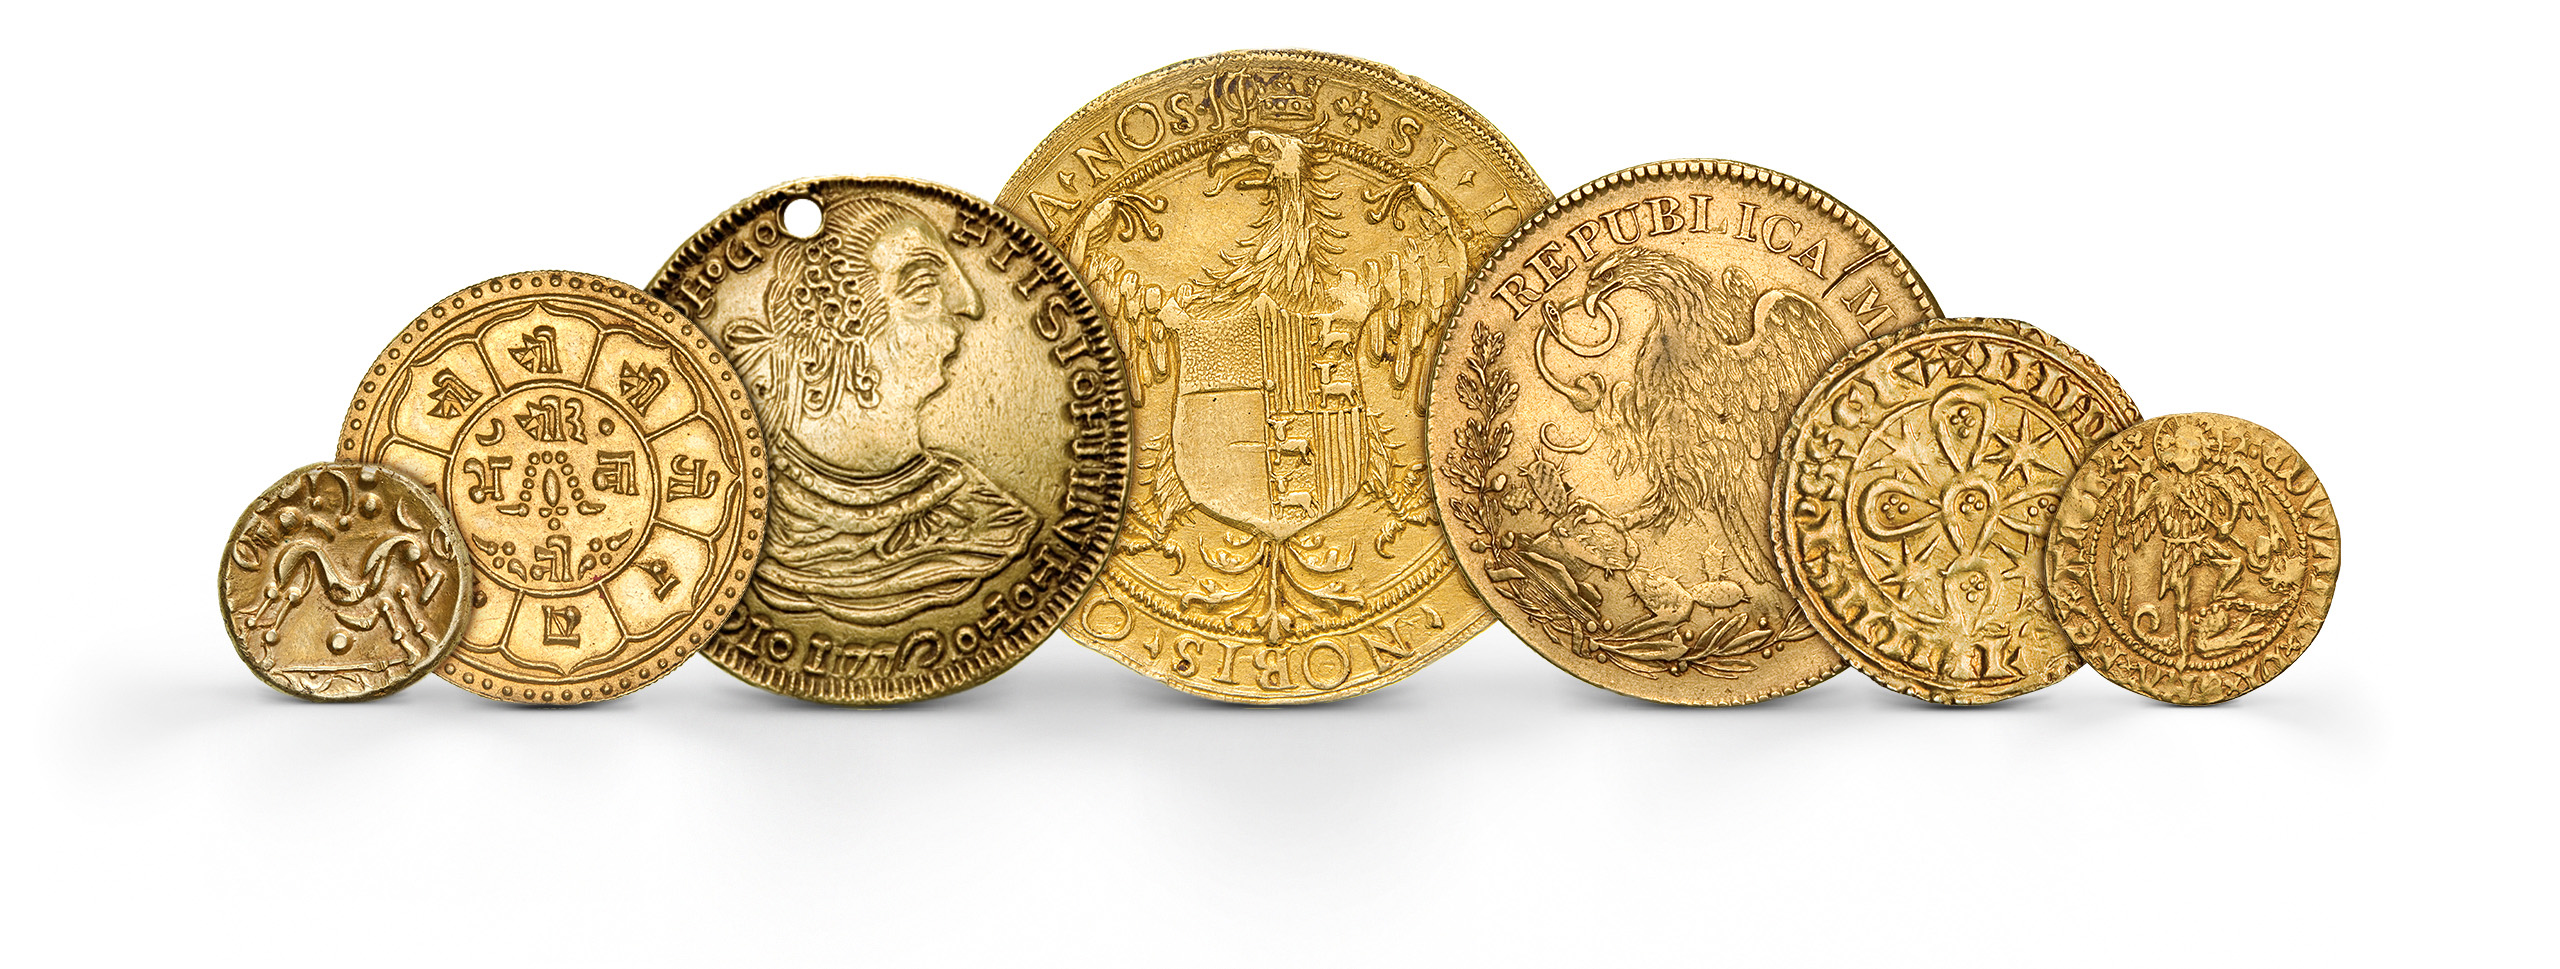 Photography of world modern Coins in gold from several periods, photographed for Morton and Eden in association with Sotheby's sold in auction in London Photography and retouch by Maria Queralt